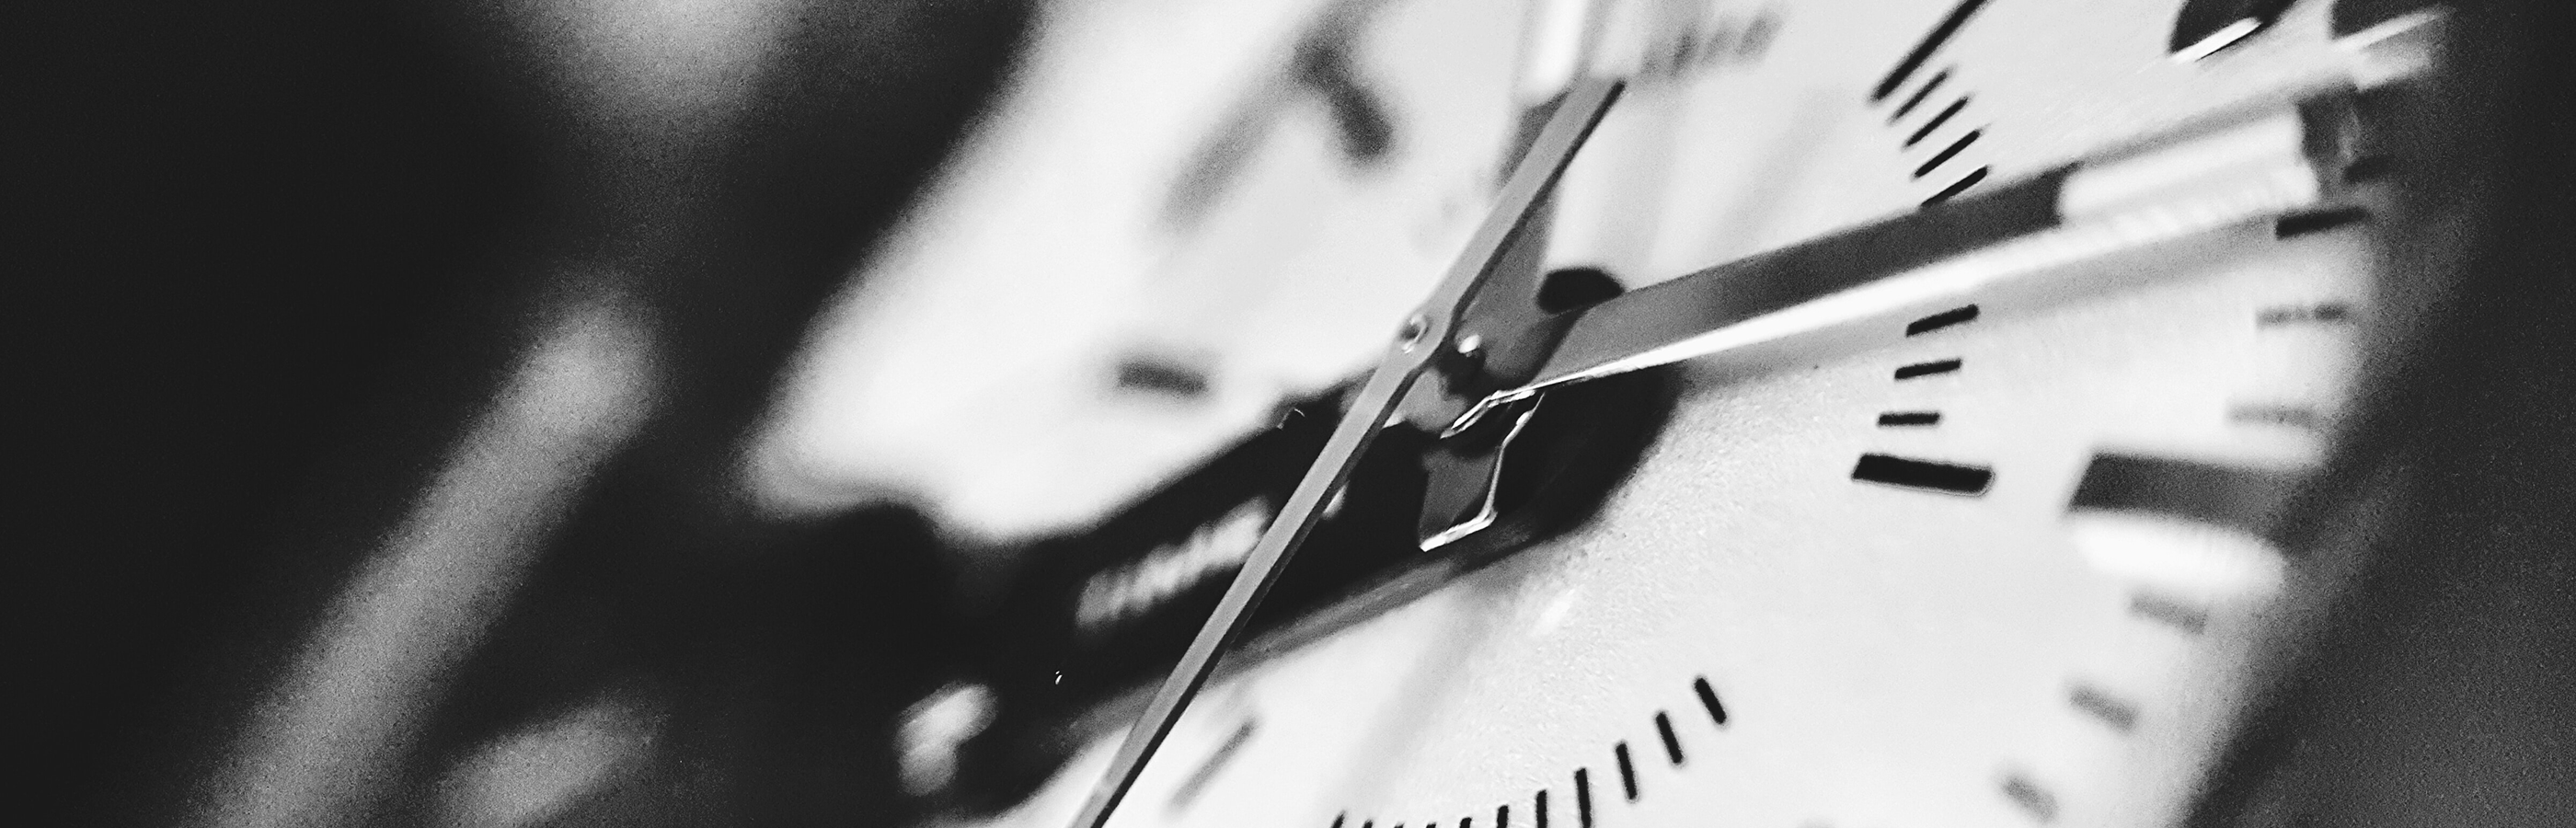 Black and white close up of an analog wall clock